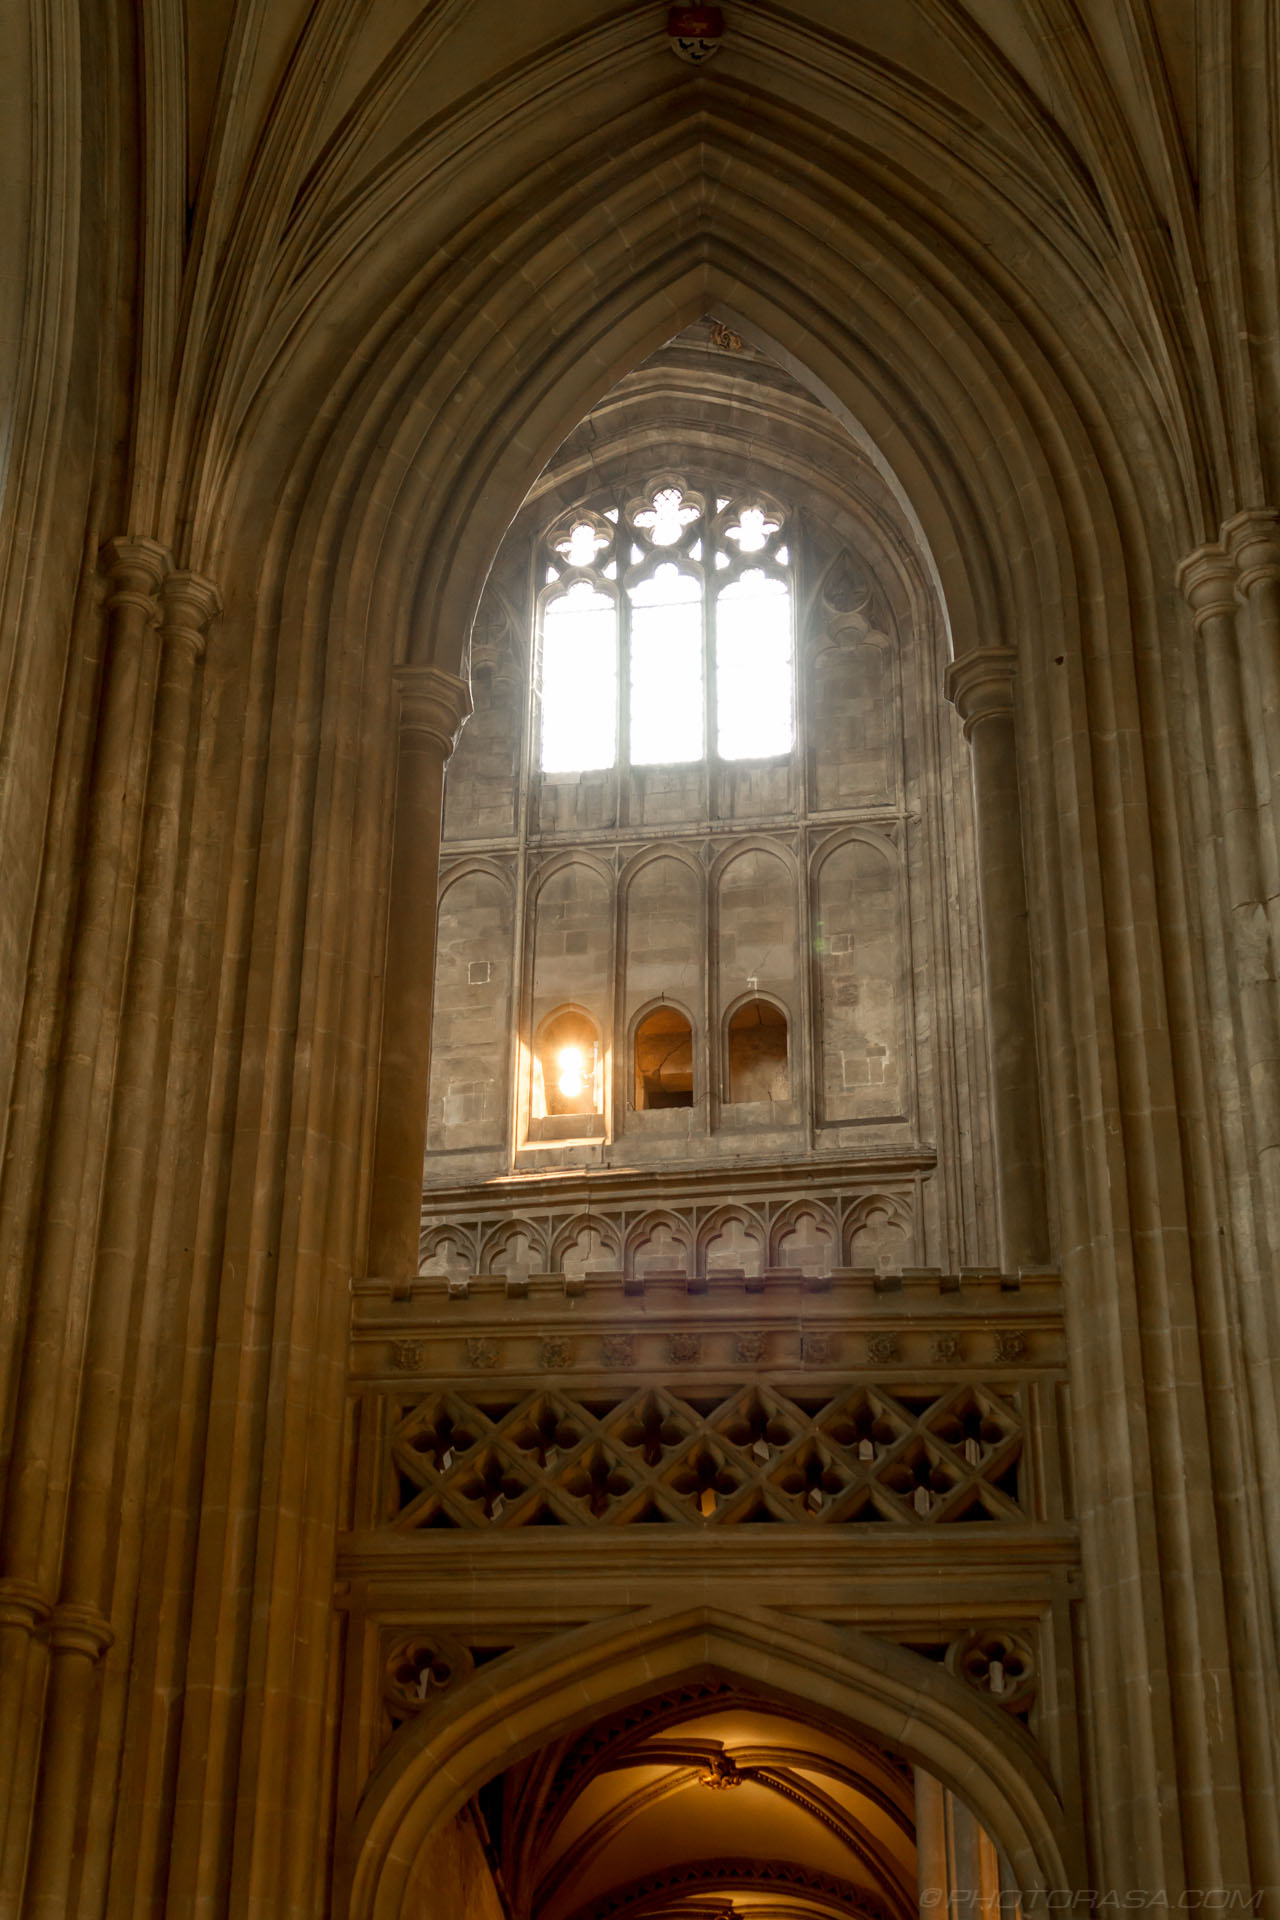 http://photorasa.com/canterbury-cathedral/light-shining-though-lancet-pointed-arch-from-cathedral-windows/